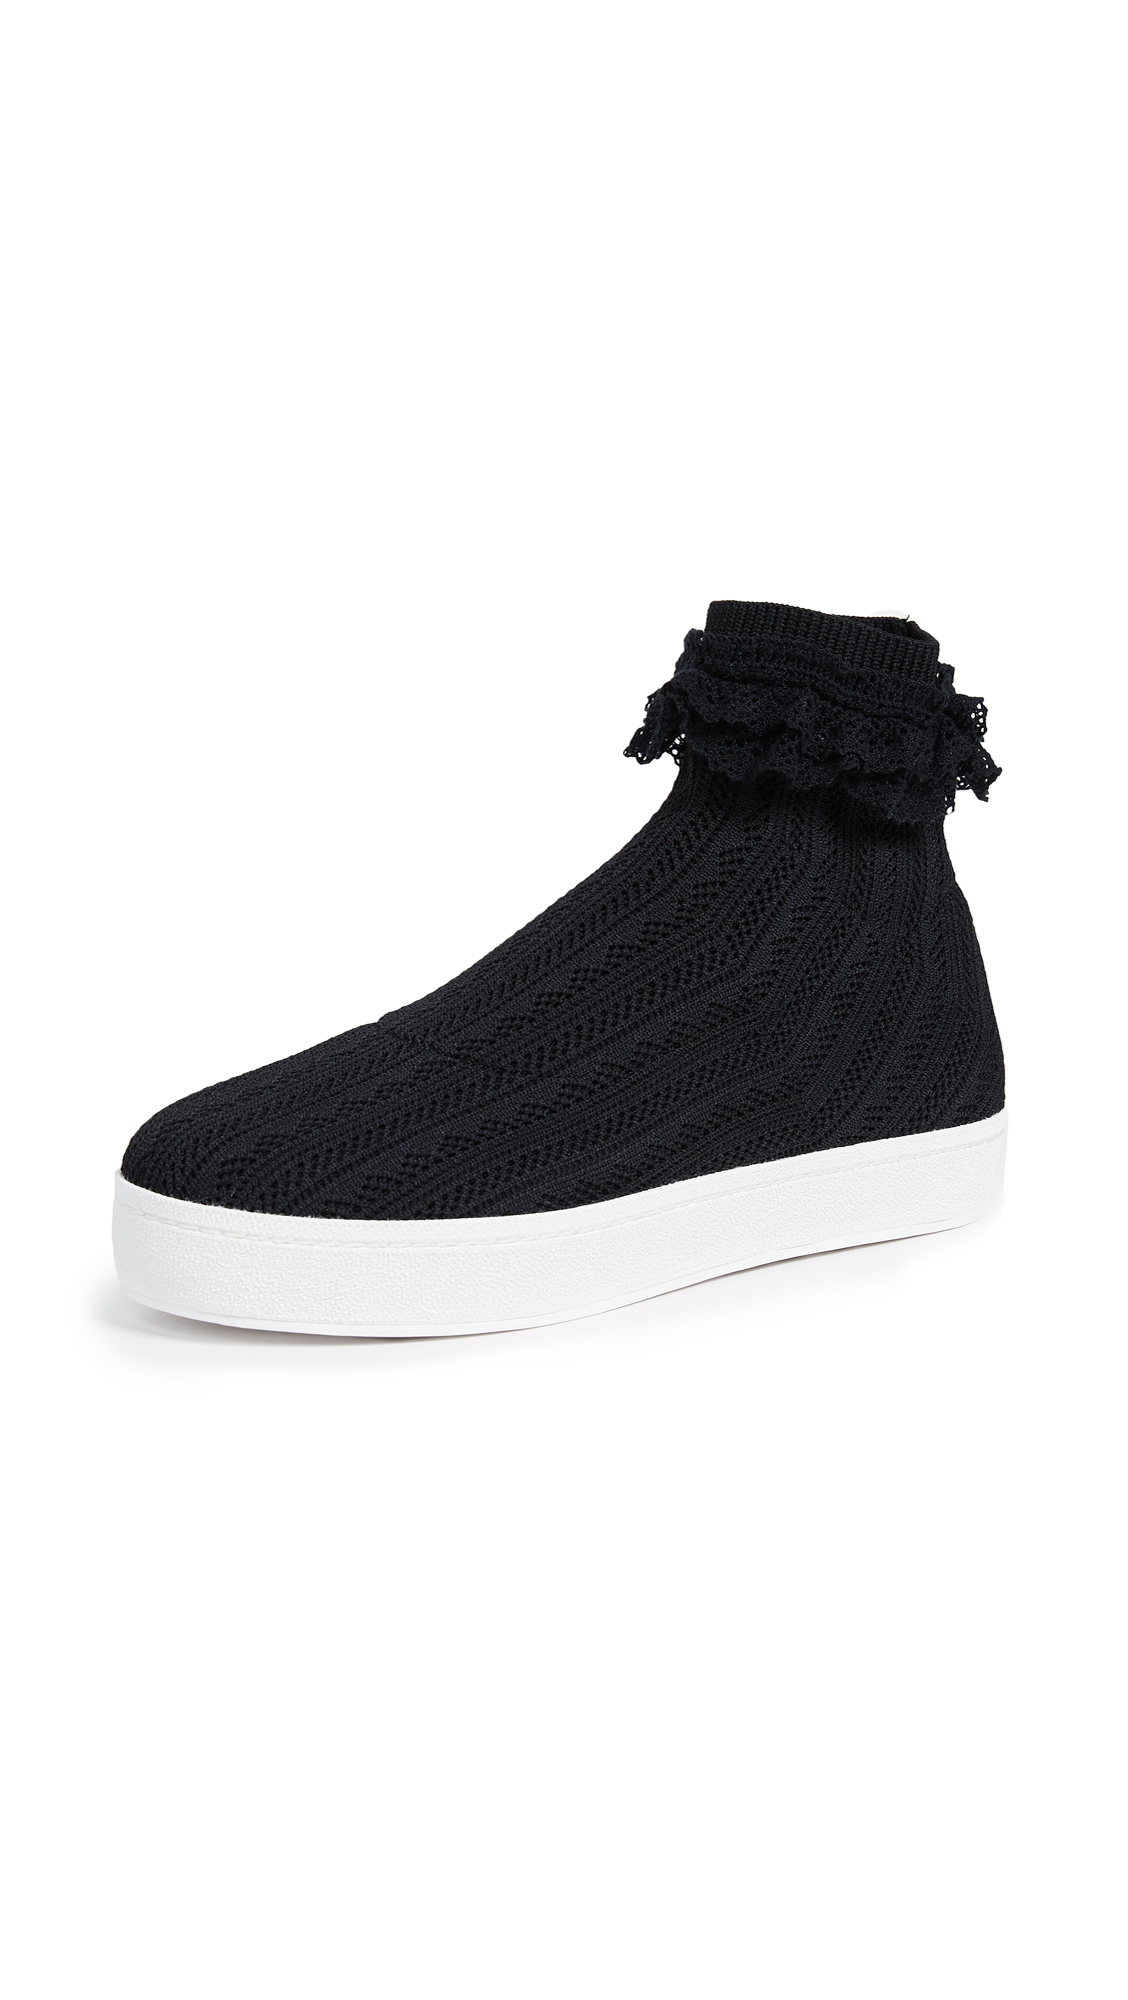 Bobby Sock Knit Sneaker in Black